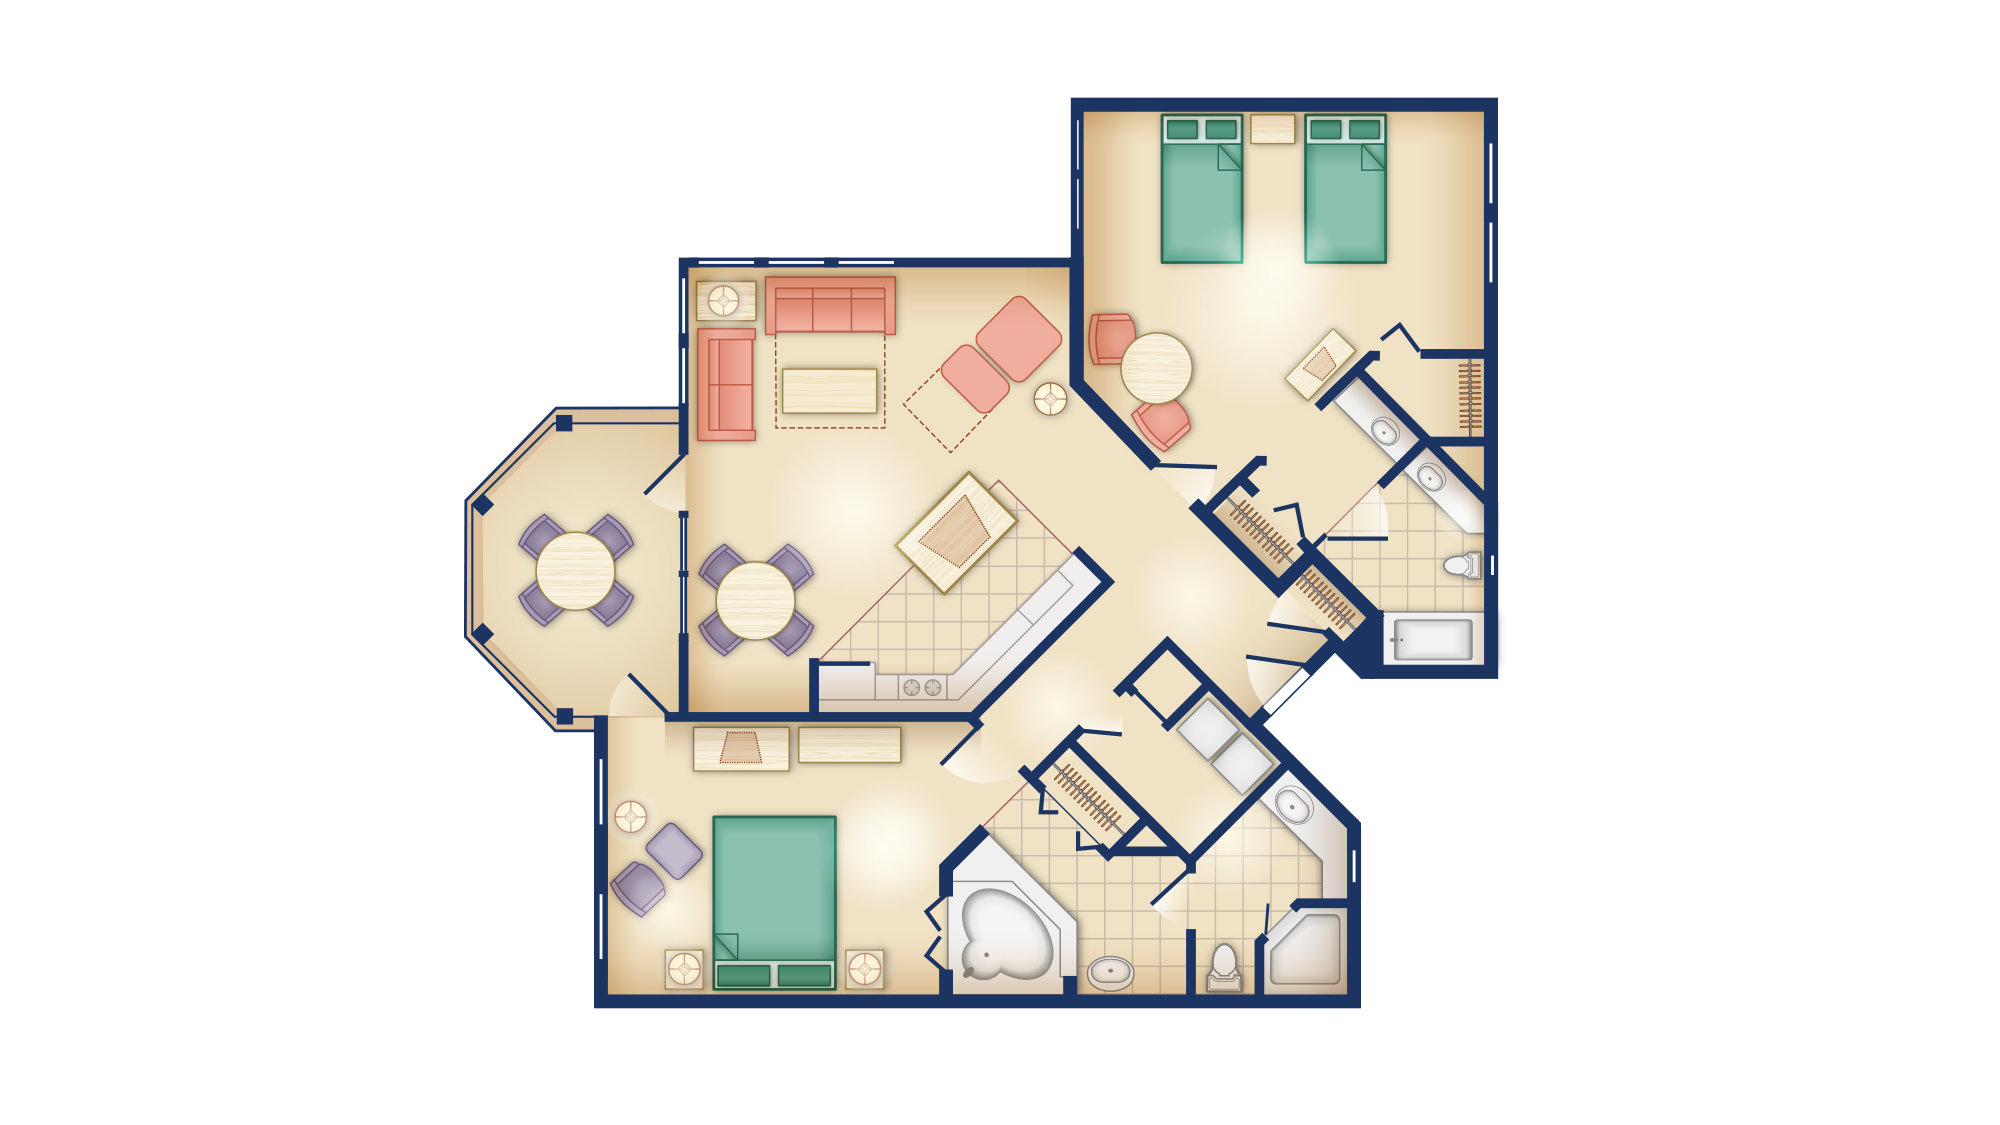 OKW - Dedicated Two-Bedroom